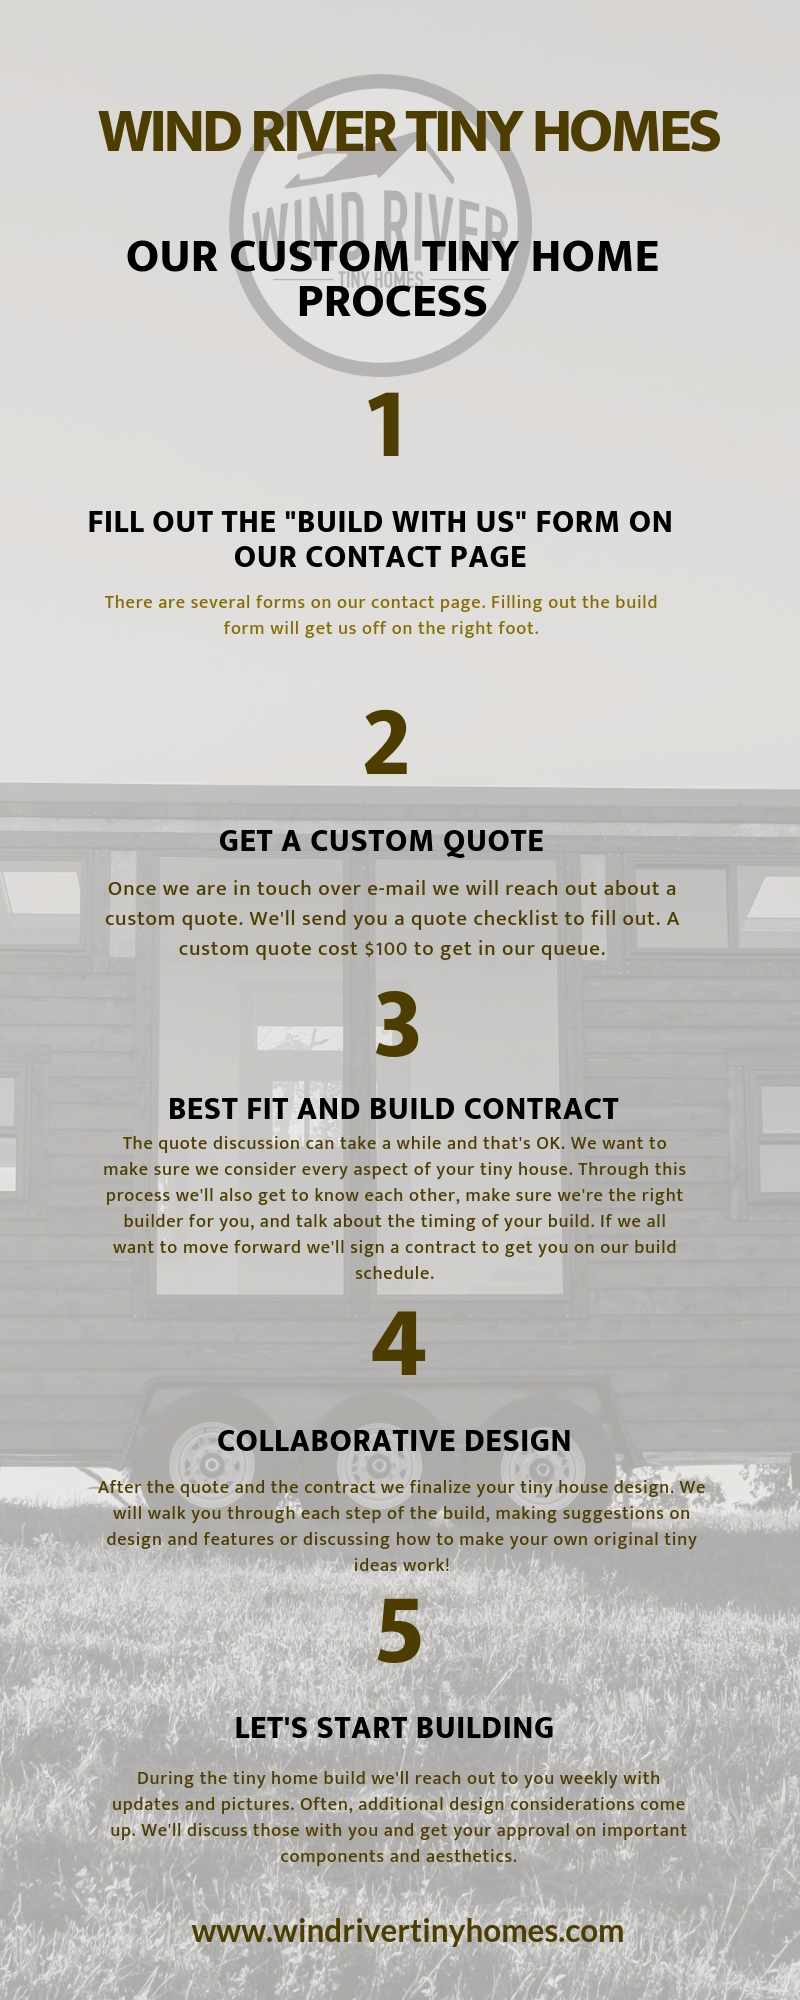 Our custom tiny home process. Read more below . . .